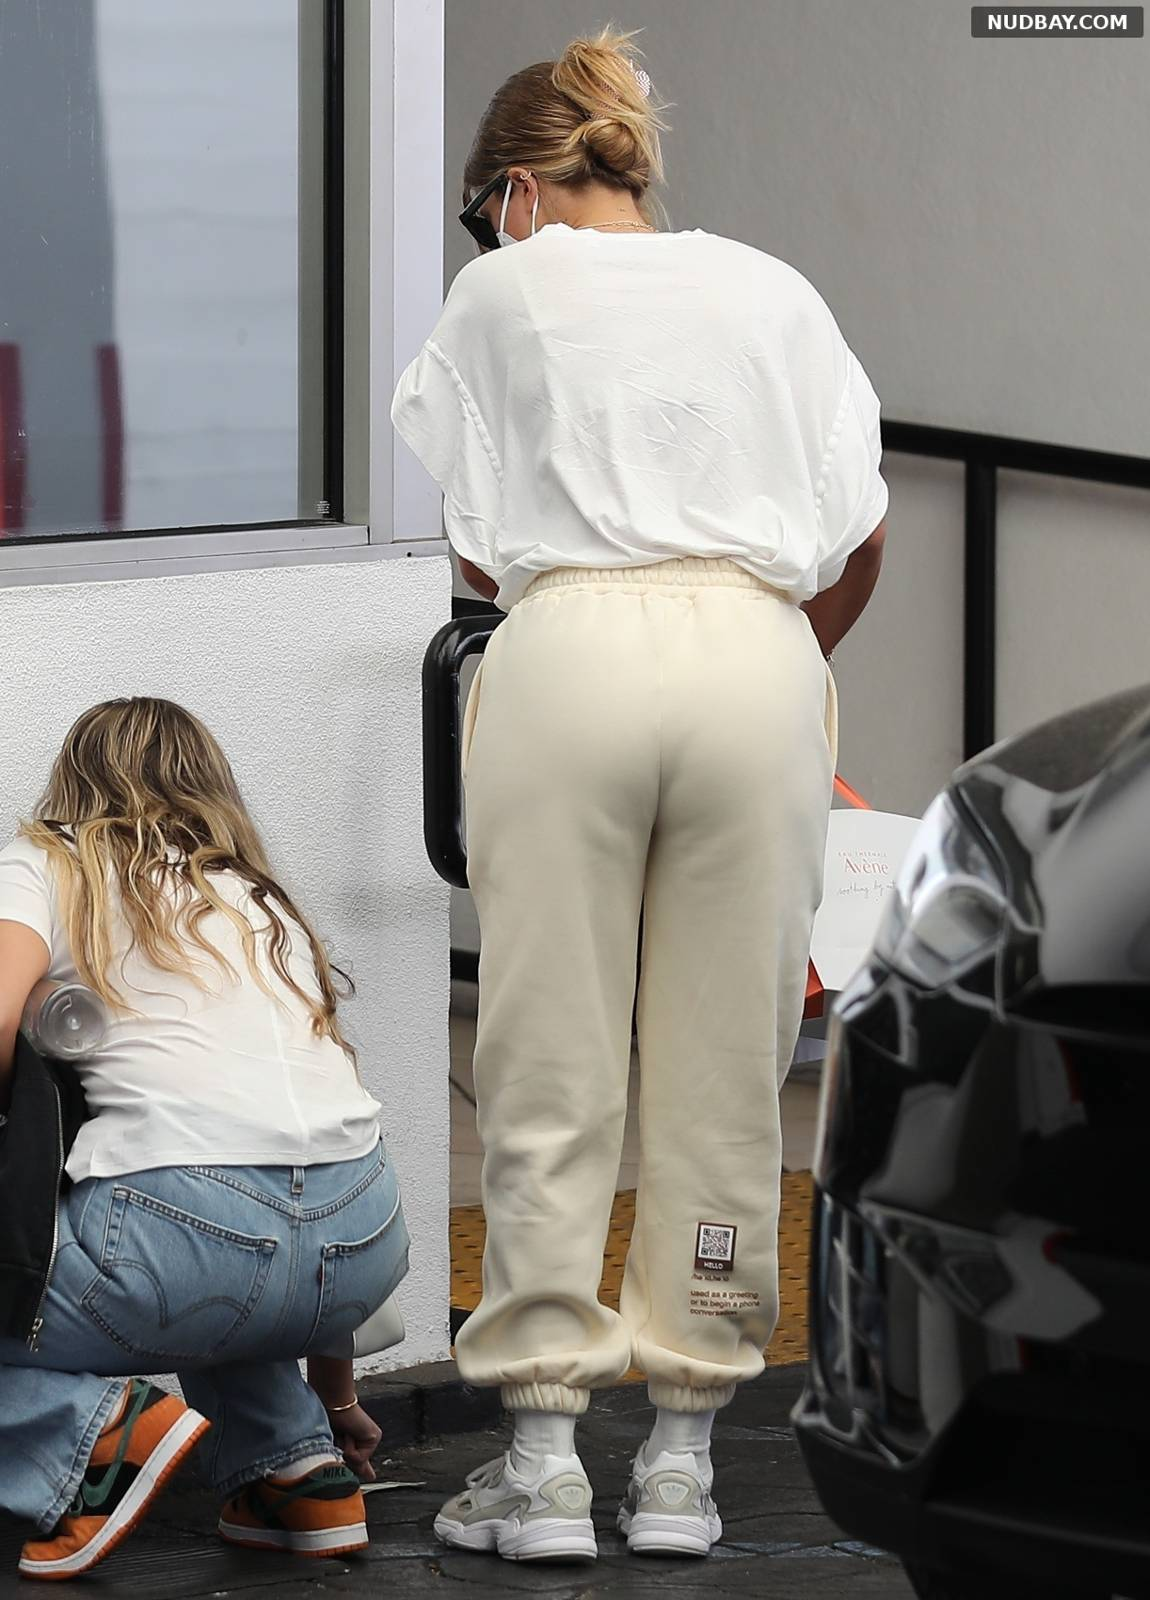 Sofia Richie booty at her dermatologist in Beverly Hills May 25 2021